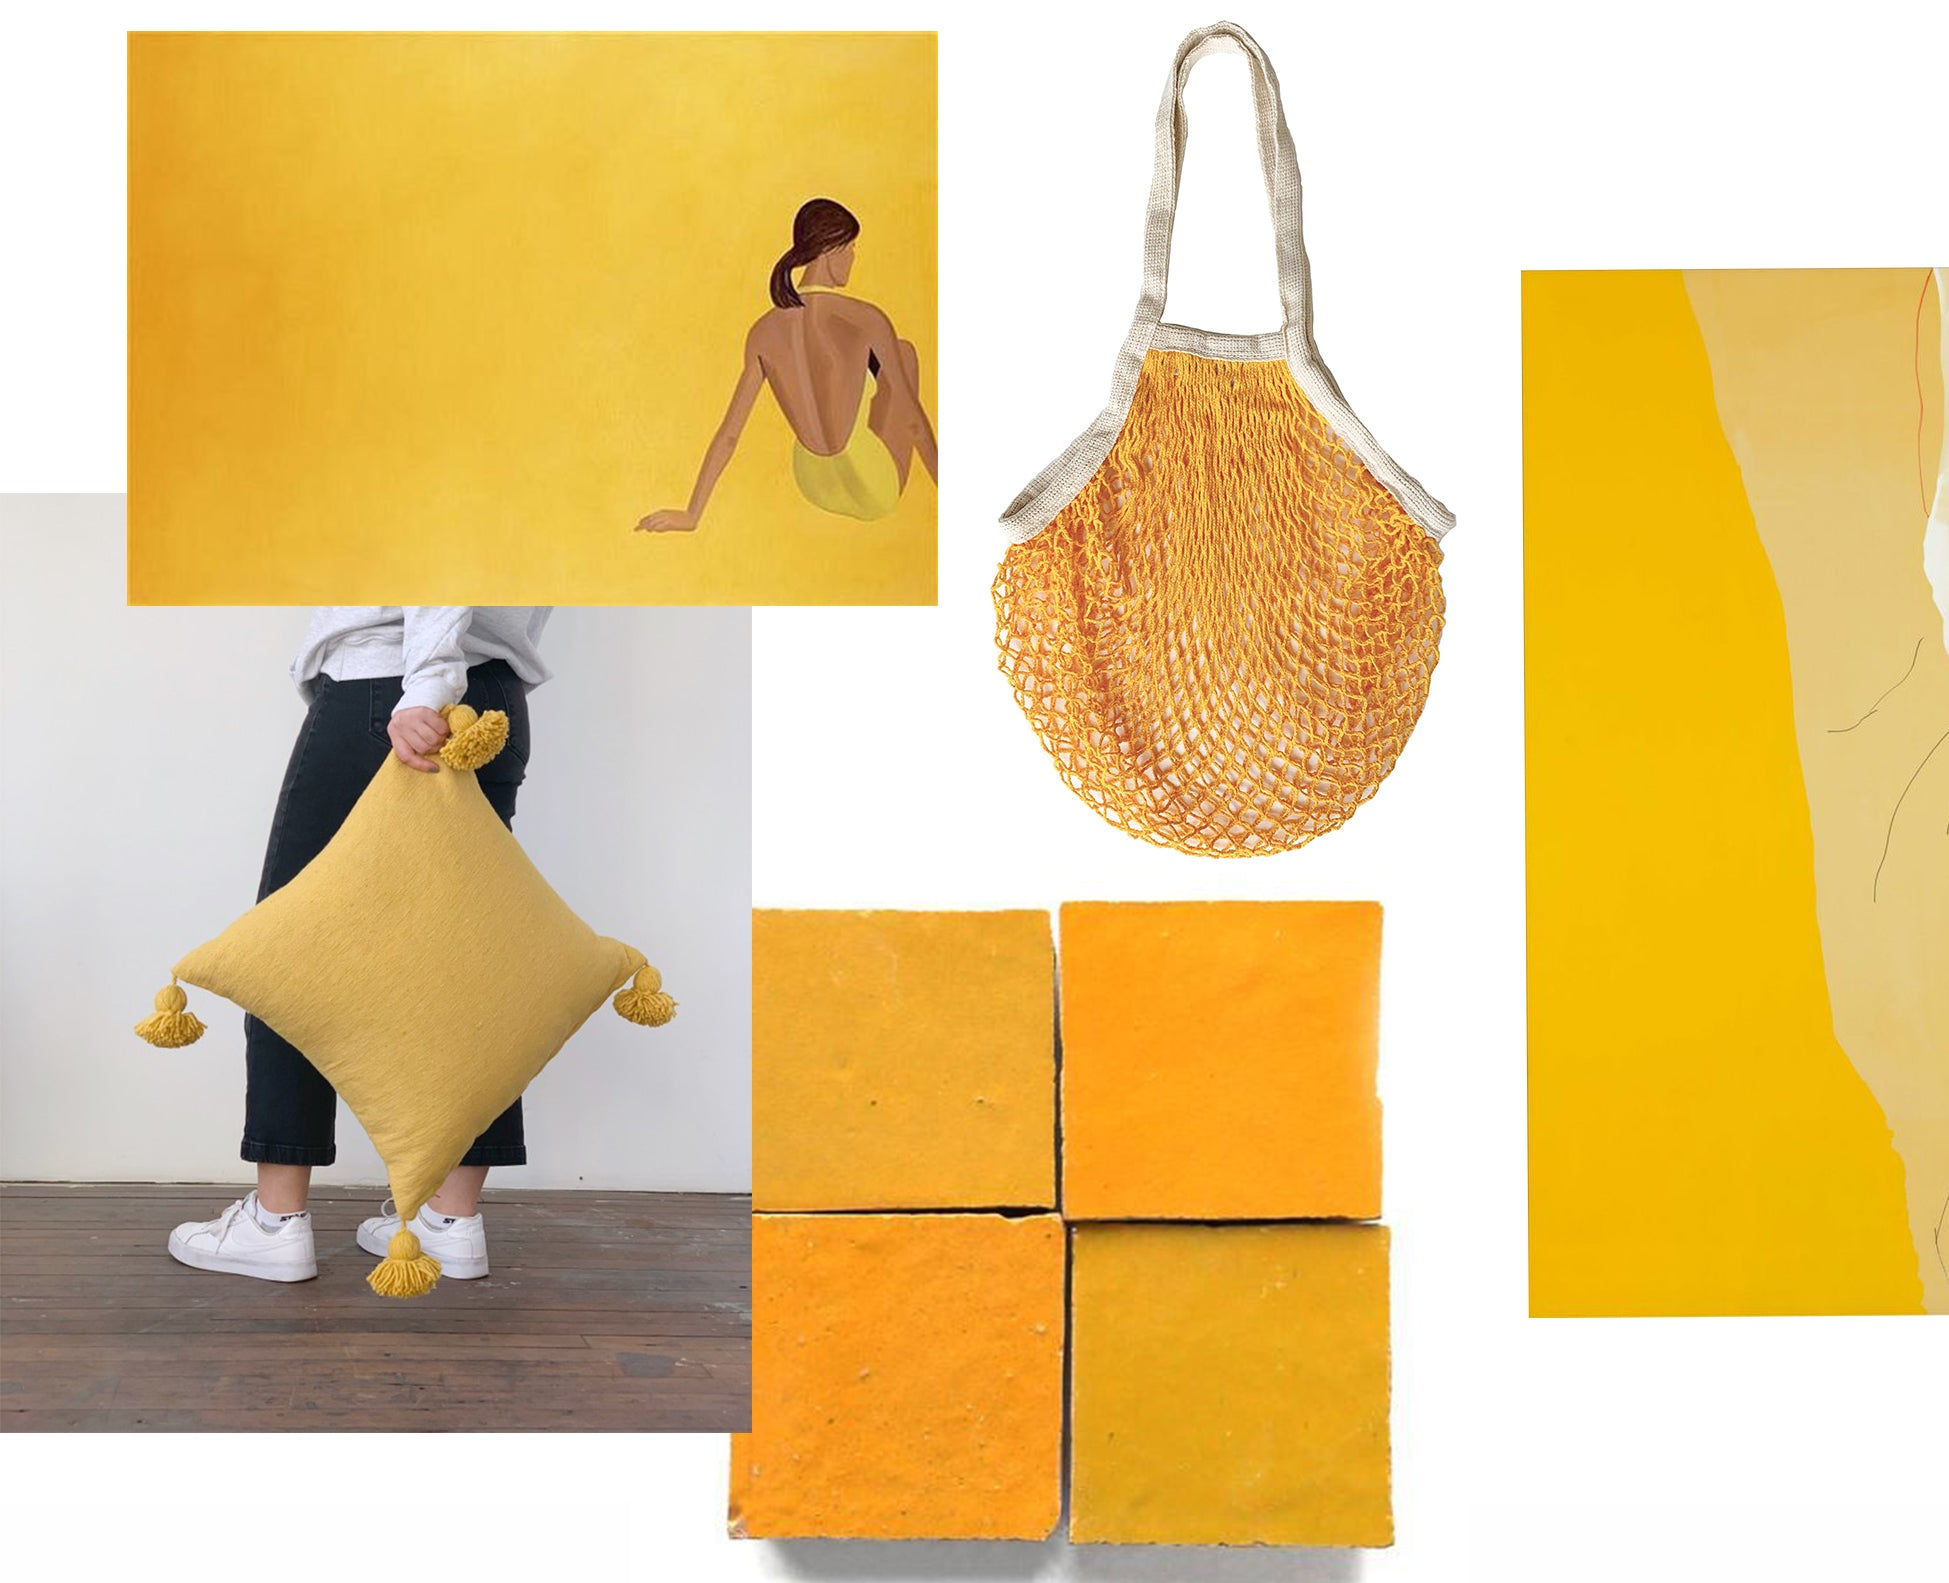 collage of yellow images. hand holding yellow pillow. Yellow net bag